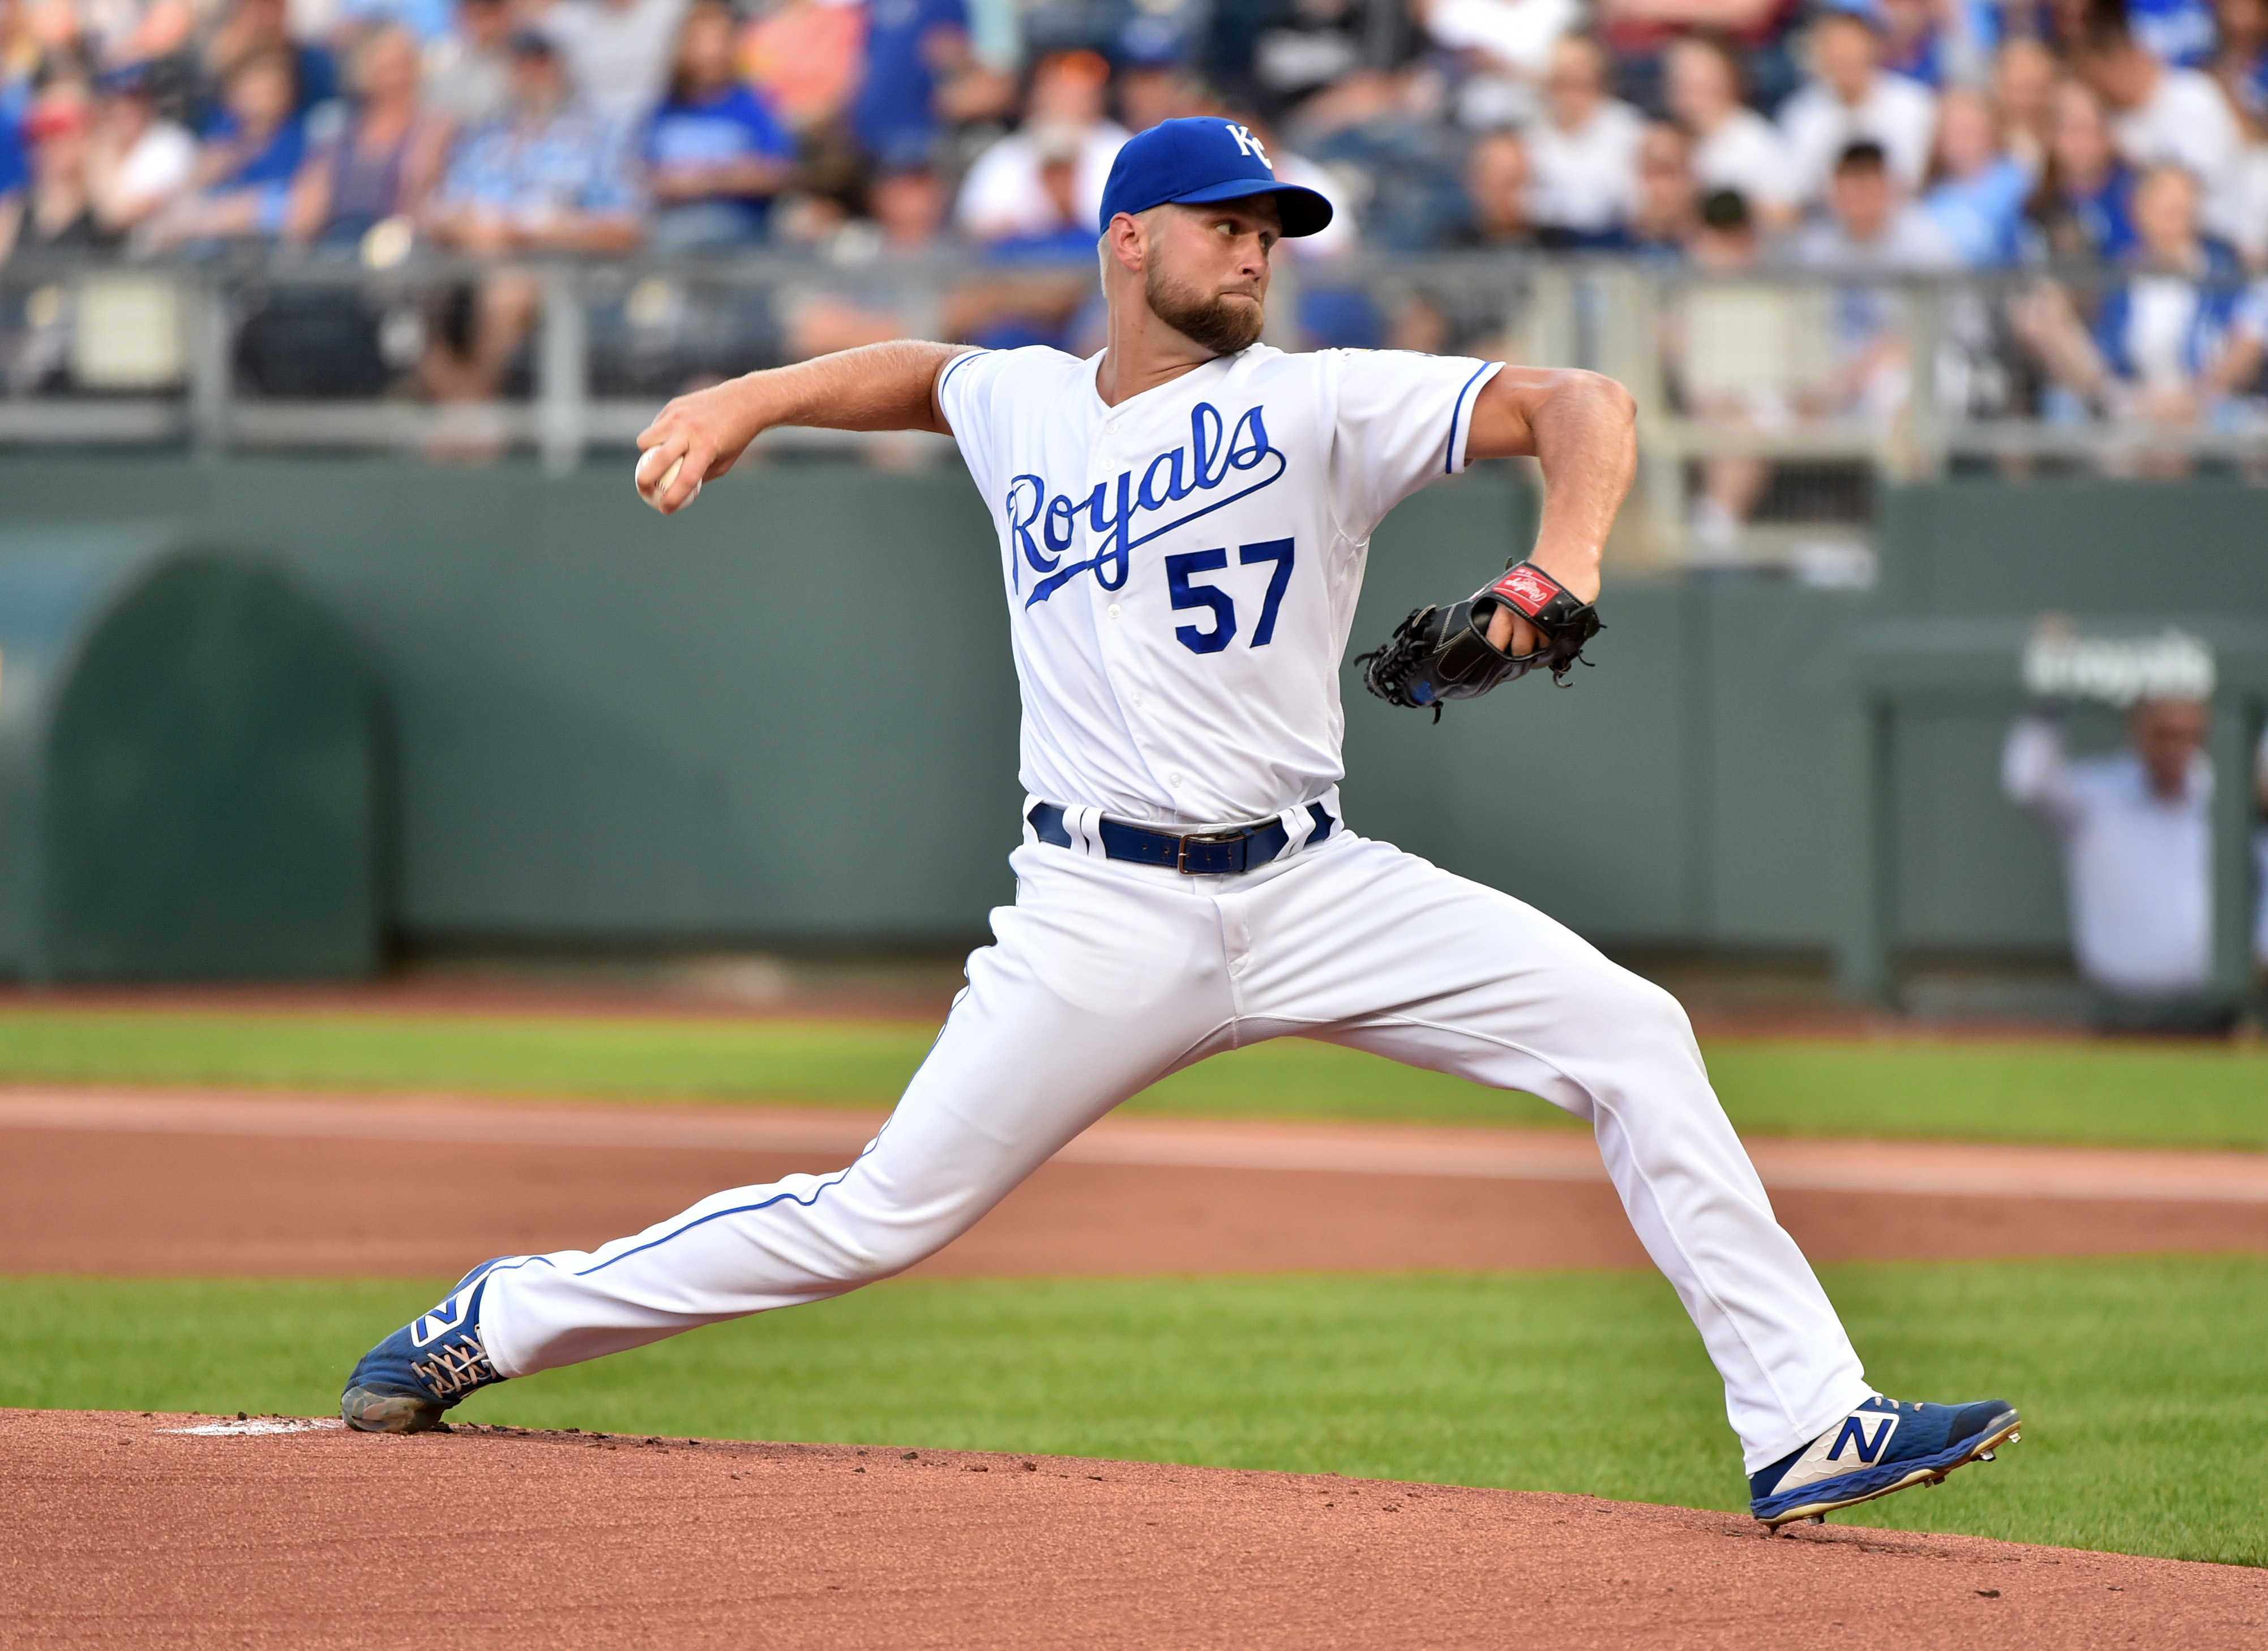 Starting pitcher Glenn Sparkman #57 of the Kansas City Royals throws in the first inning against the Chicago White Sox at Kauffman Stadium on July 16, 2019 in Kansas City, Missouri.